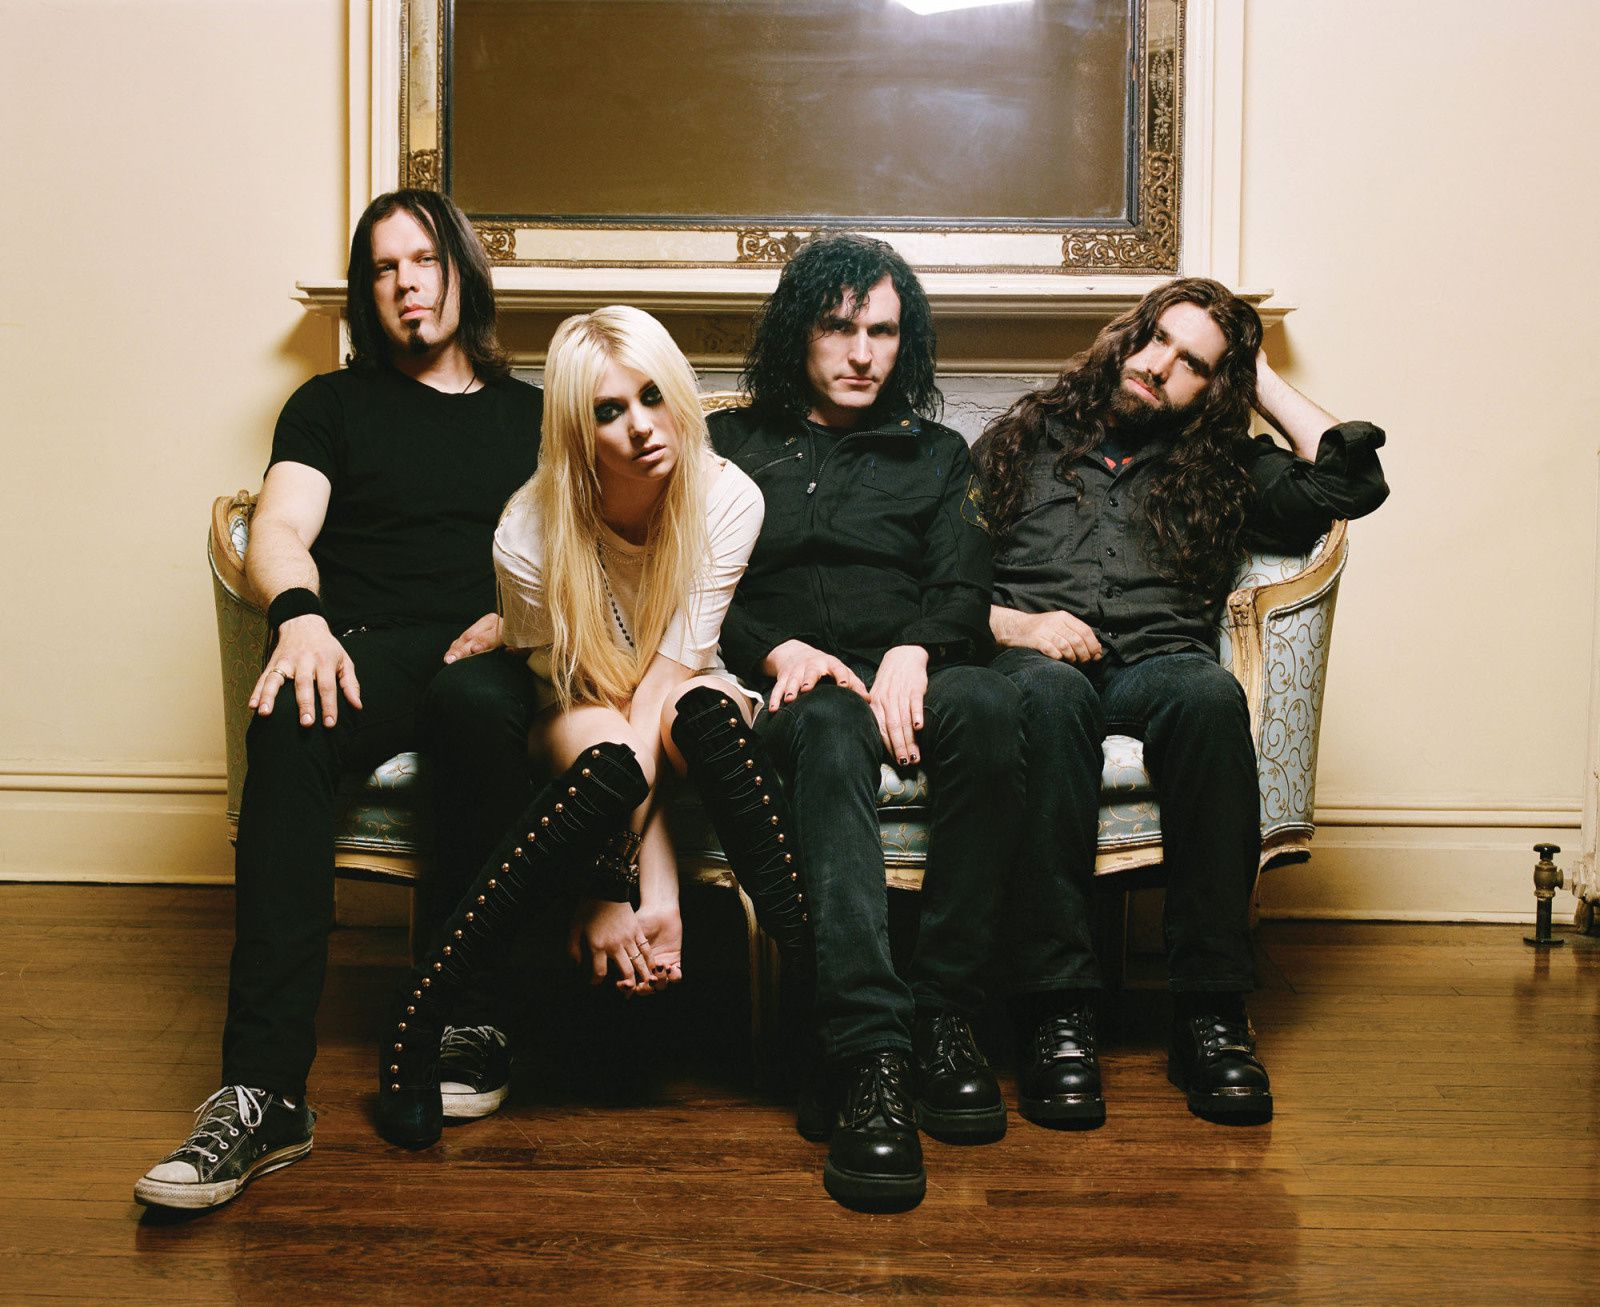 Sortie D'Album: Who You Selling For The Pretty Reckless